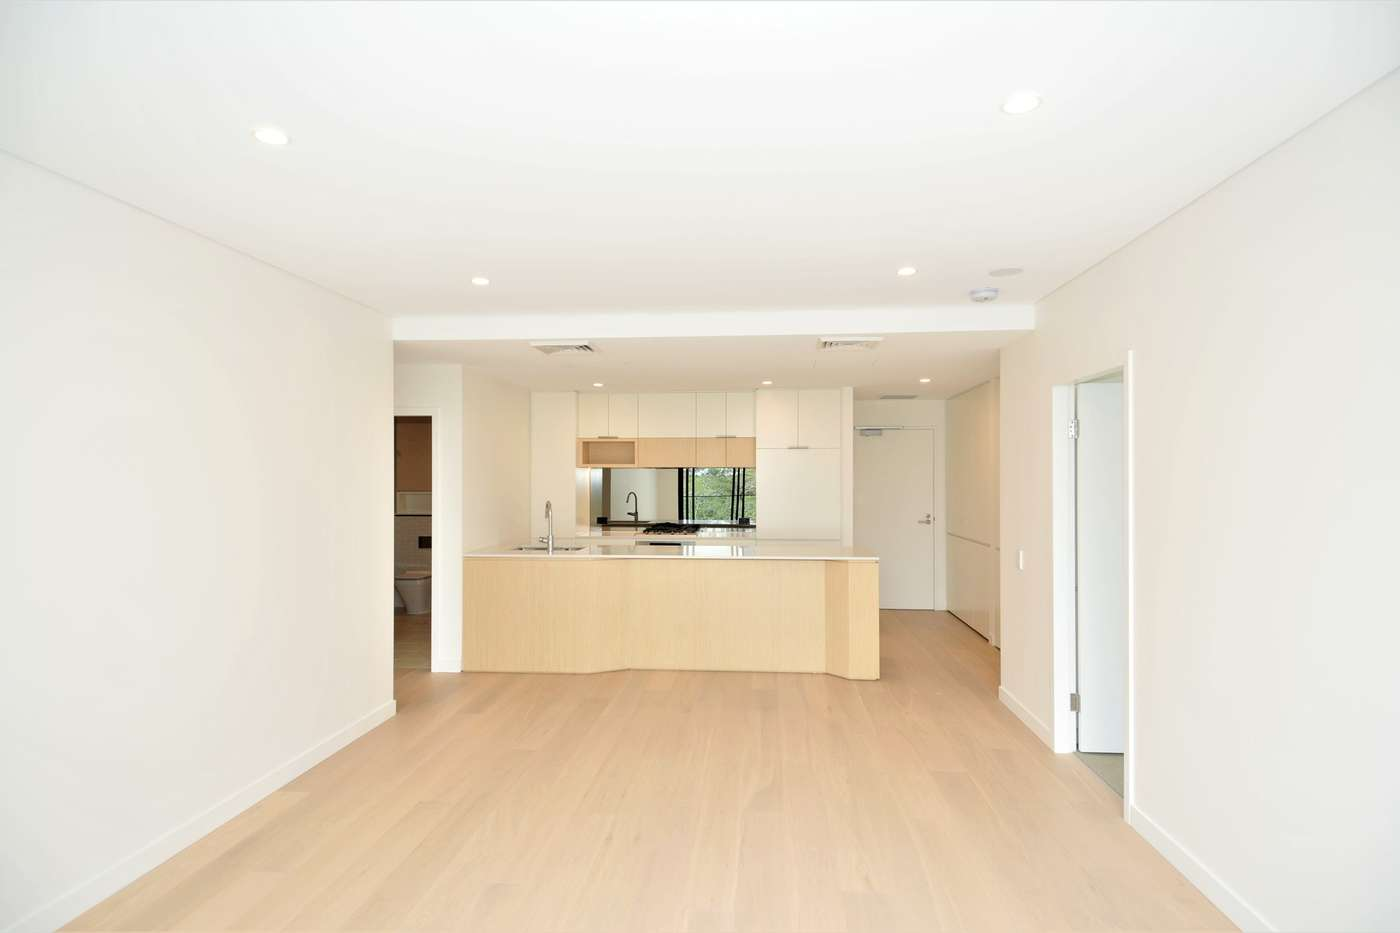 Main view of Homely apartment listing, 27/1 Womerah Street, Turramurra, NSW 2074